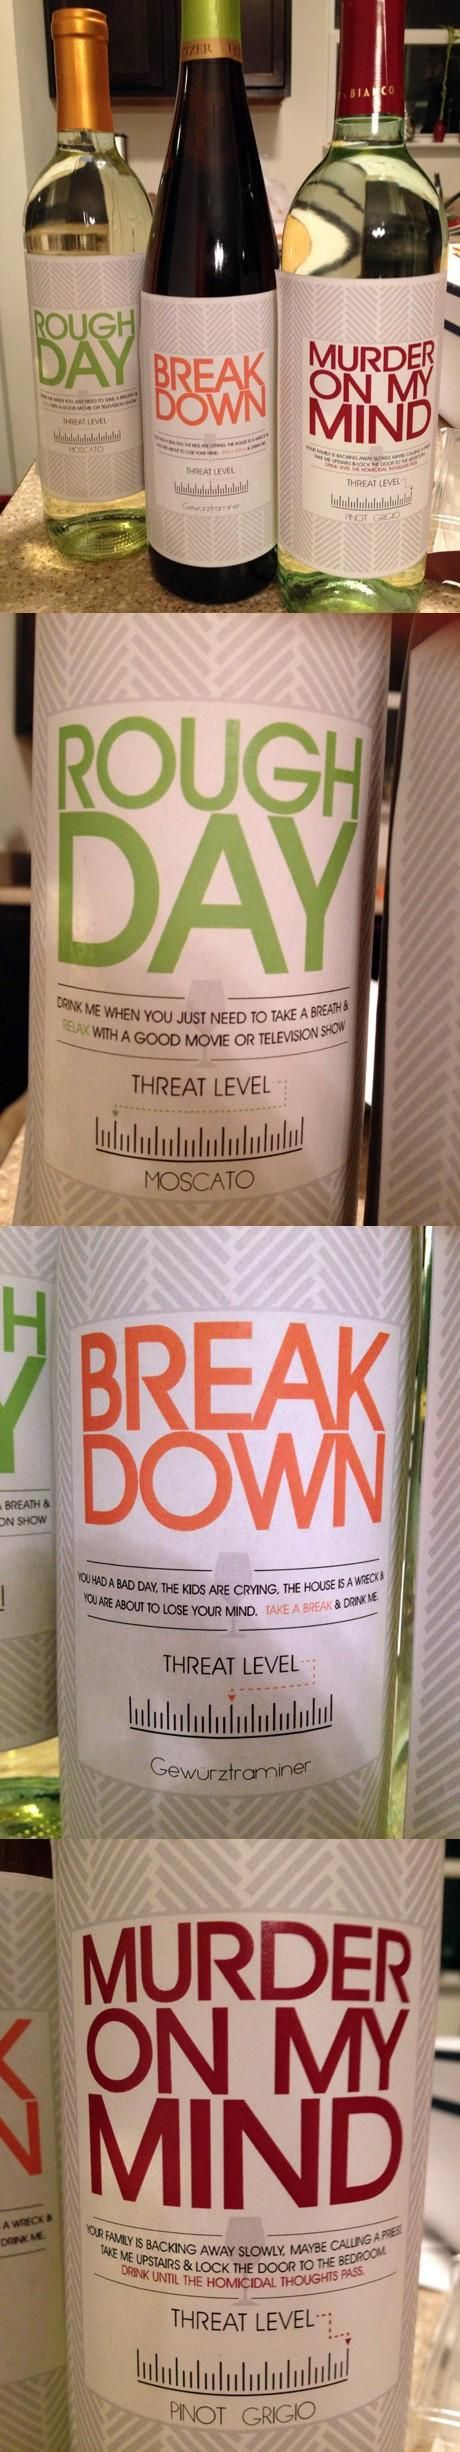 Rough Day Wines https://www.etsy.com/listing/187543371/cheer-up-wine-label-set-personalized?ref=shop_home_active_4